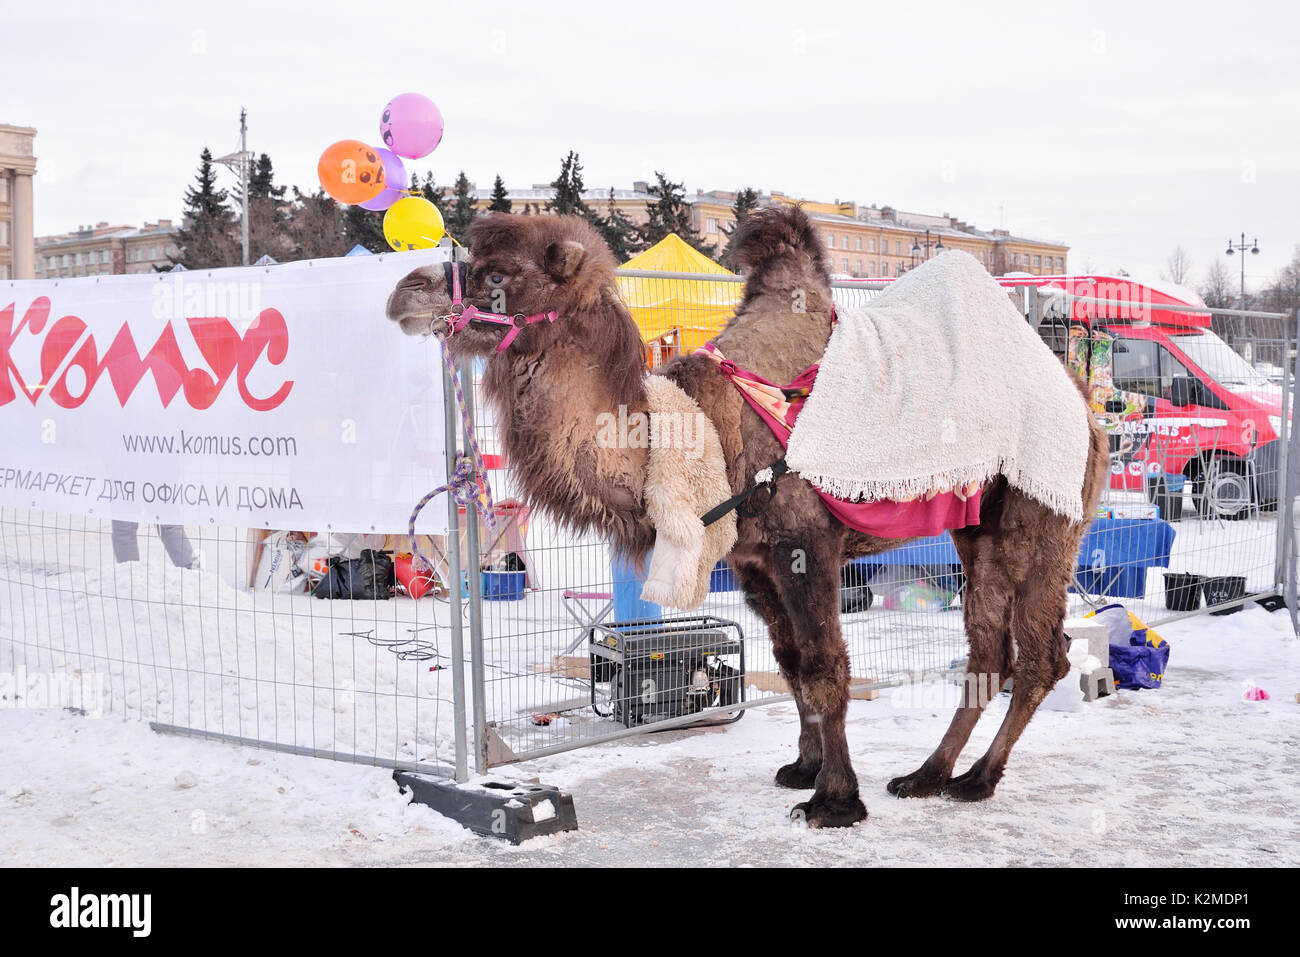 Camel is during carnival in the Moscow area - Stock Image